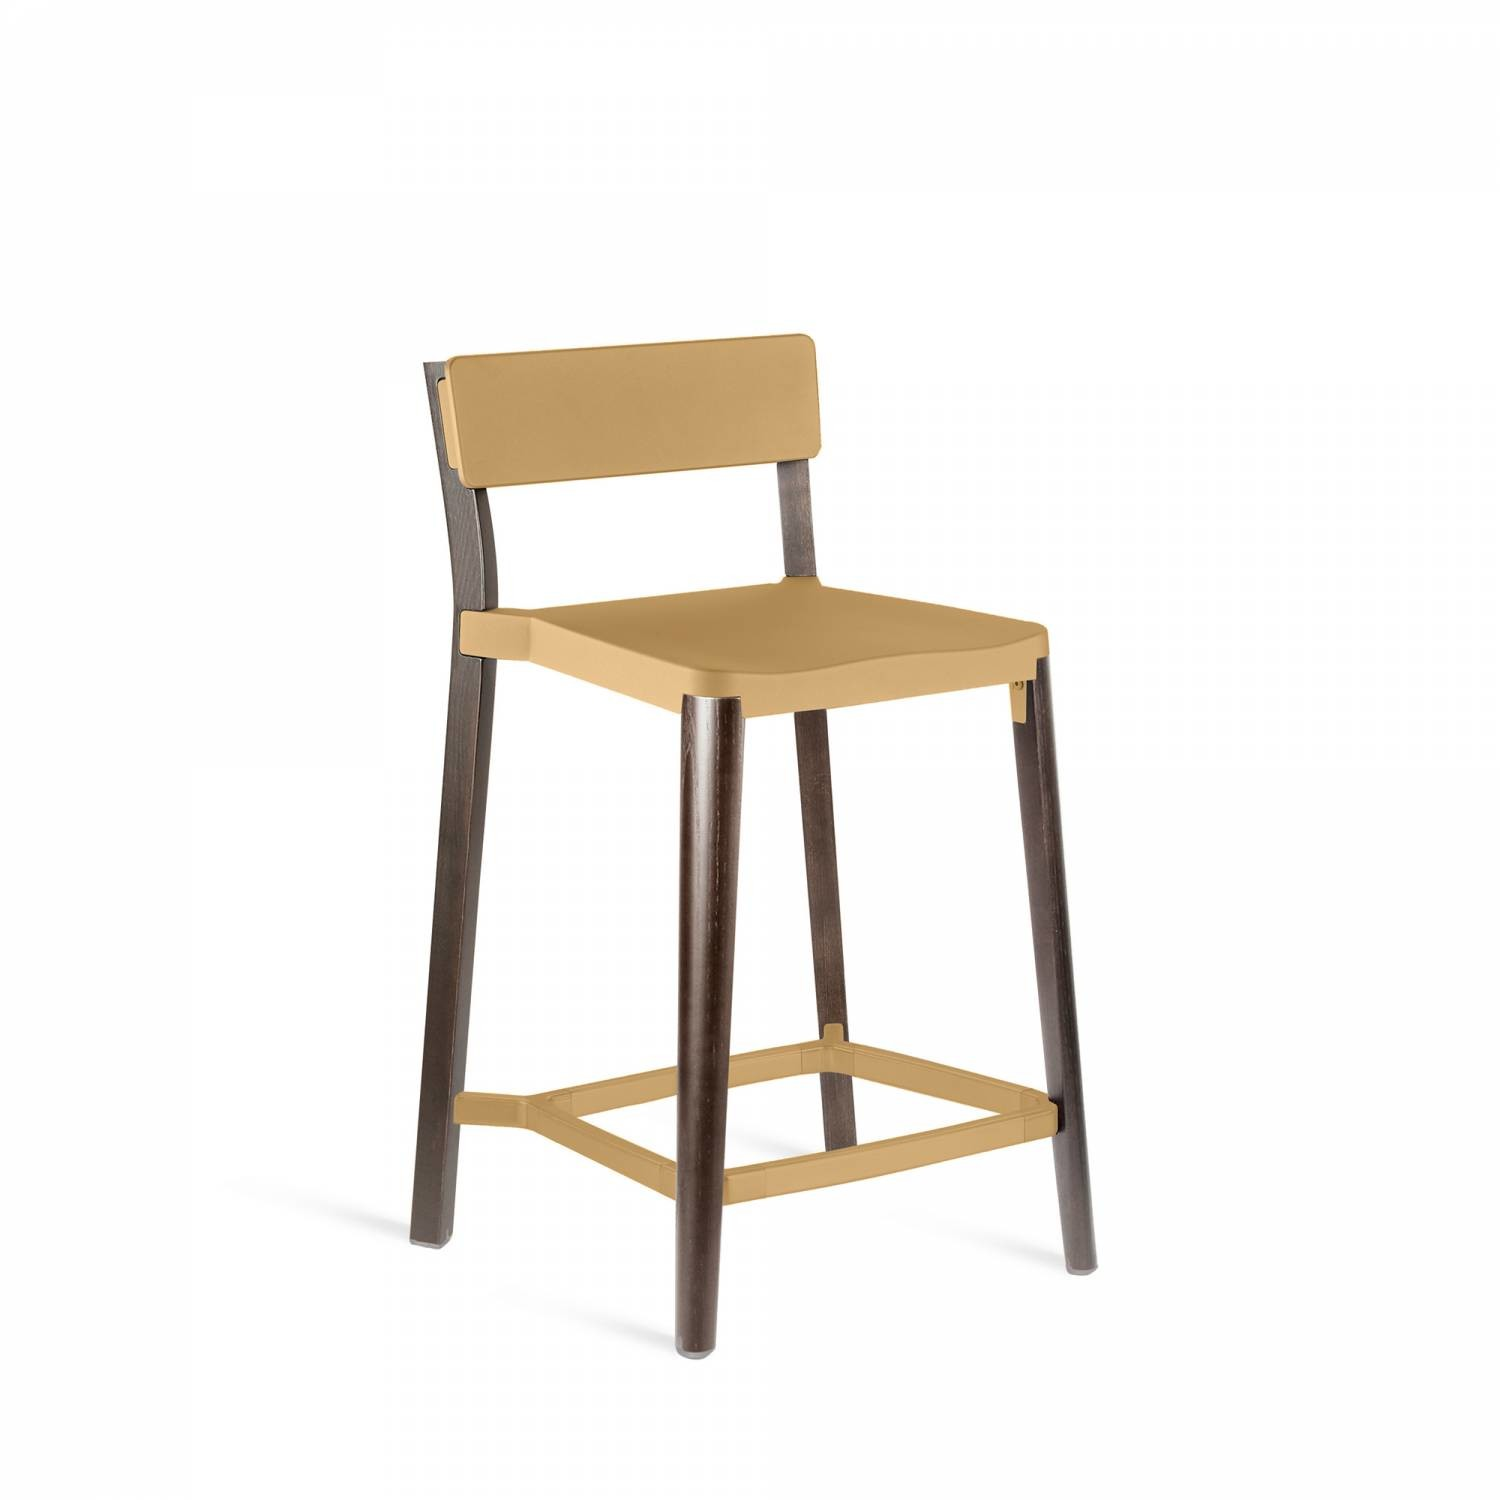 Lancaster Counter Stool Sand, Dark Wood Base, Without Seat Pad, Without Back Pad